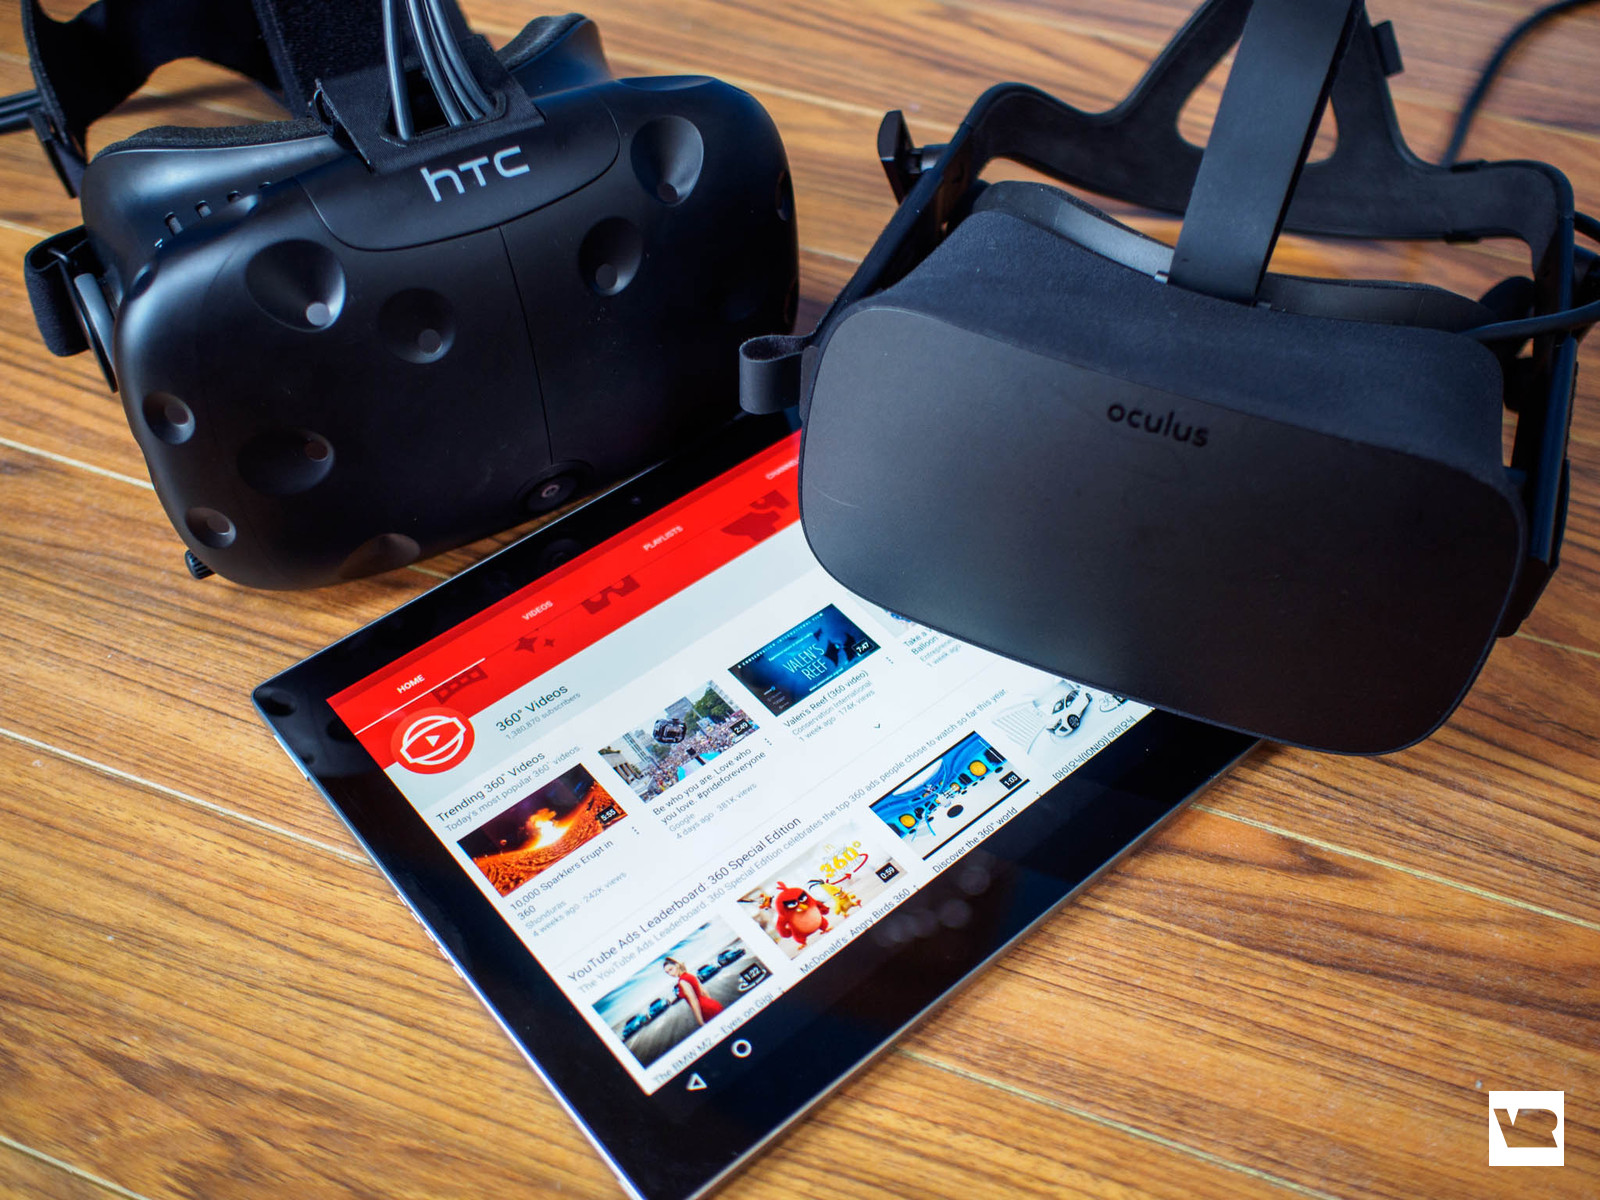 8b1341b4b45db How to watch 360-degree YouTube on HTC Vive and Oculus Rift